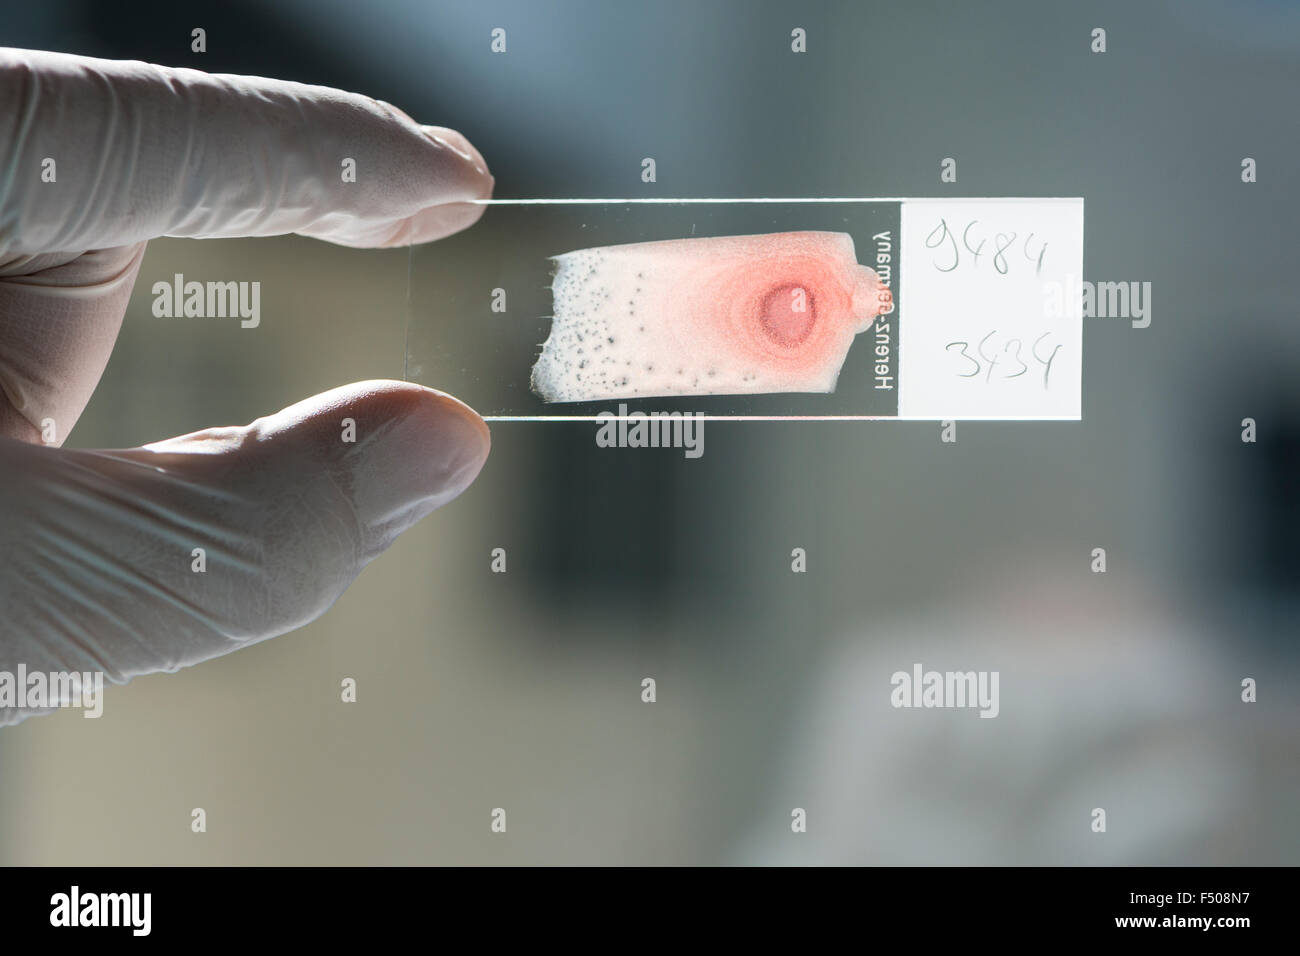 Blood is smeared on a glass slide for diagnosis, held against the light by a laboratory assistent hand - Stock Image